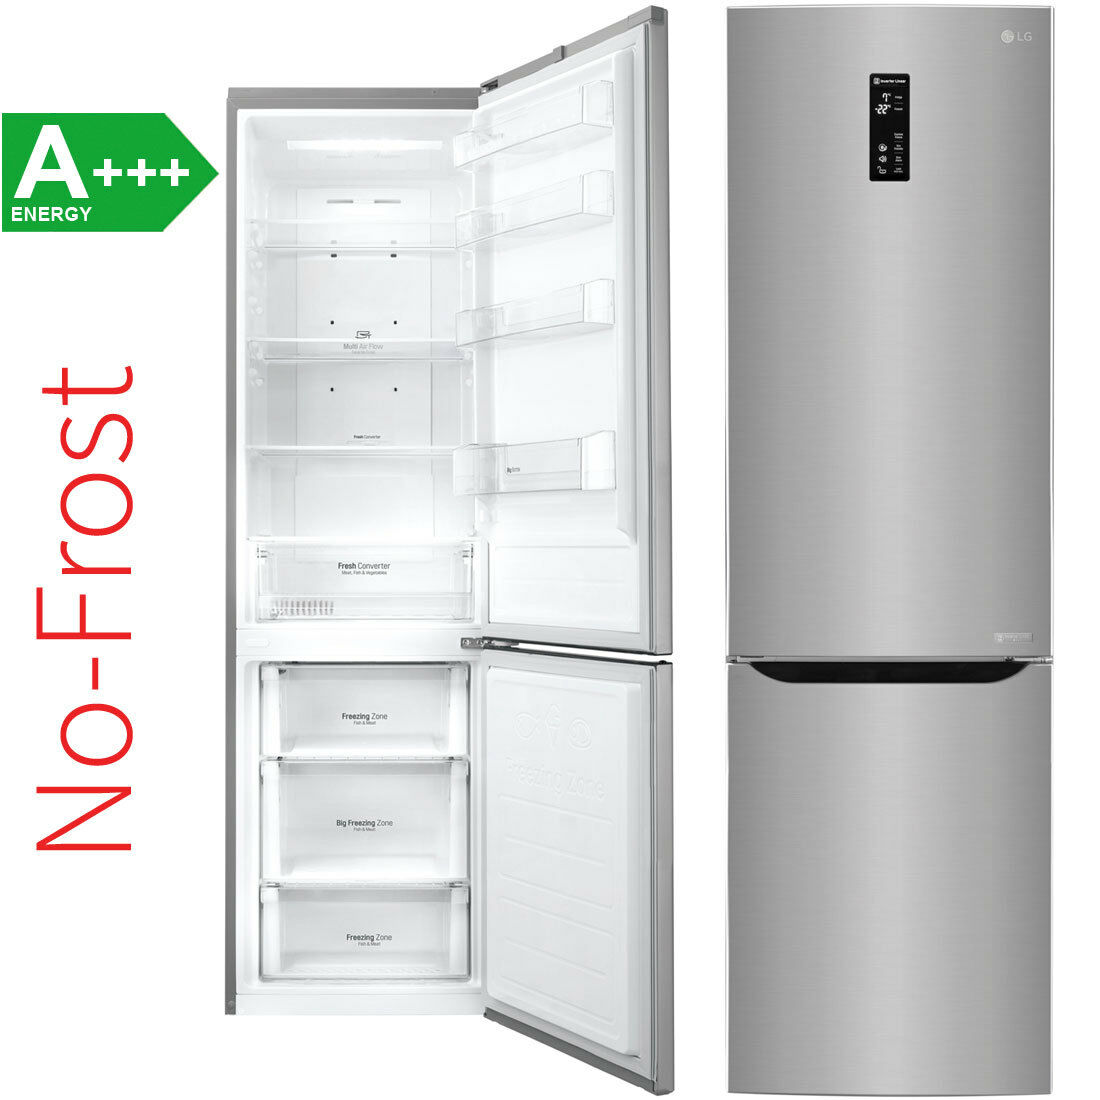 Lg gbp20pzqfs a no frost stand kuhl gefrierkombination for No frost kühl gefrierkombination